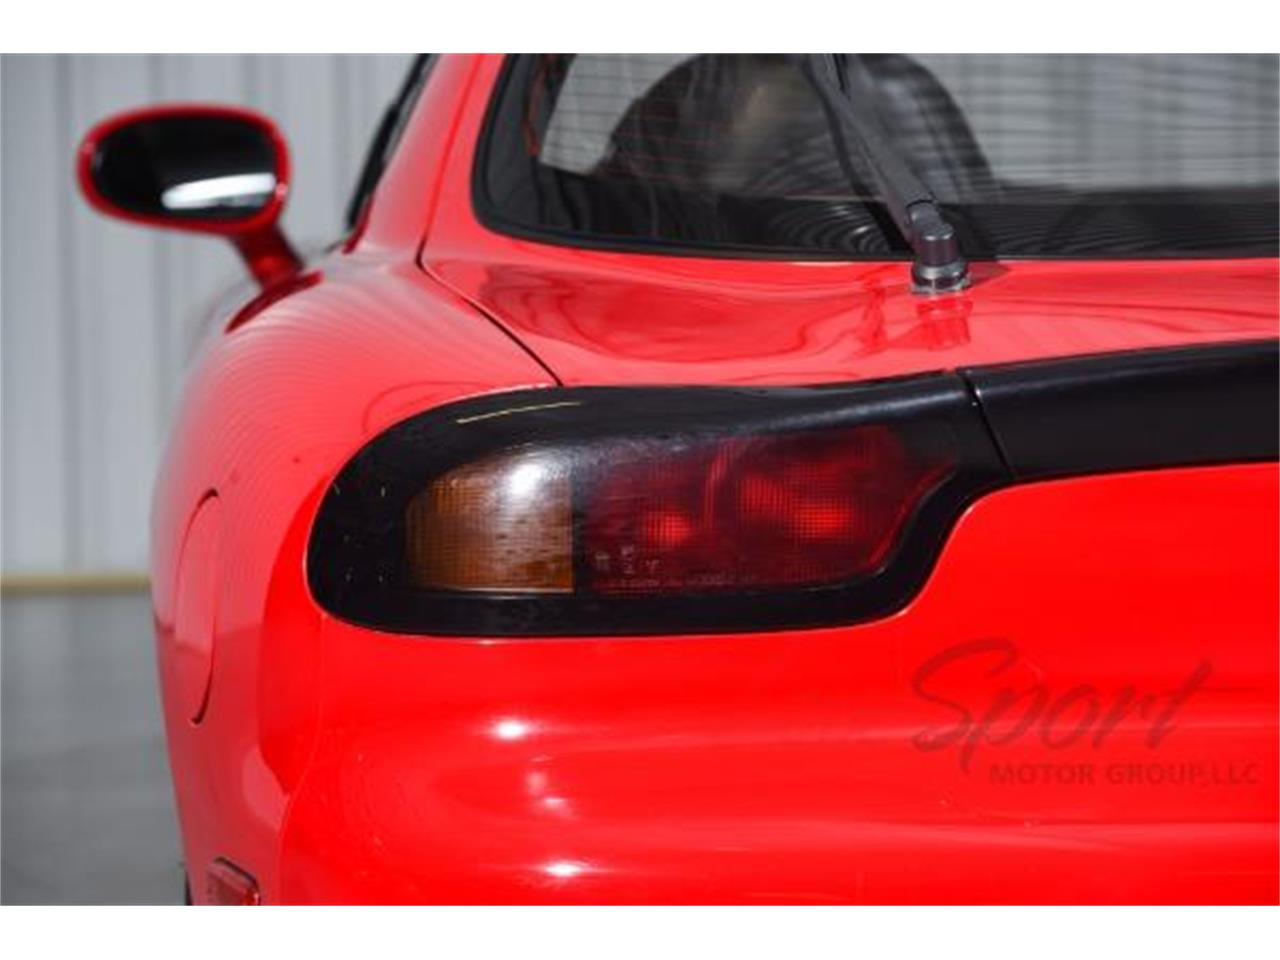 Large Picture of 1993 Mazda RX-7 Offered by LuxSport Motor Group, LLC - MO02